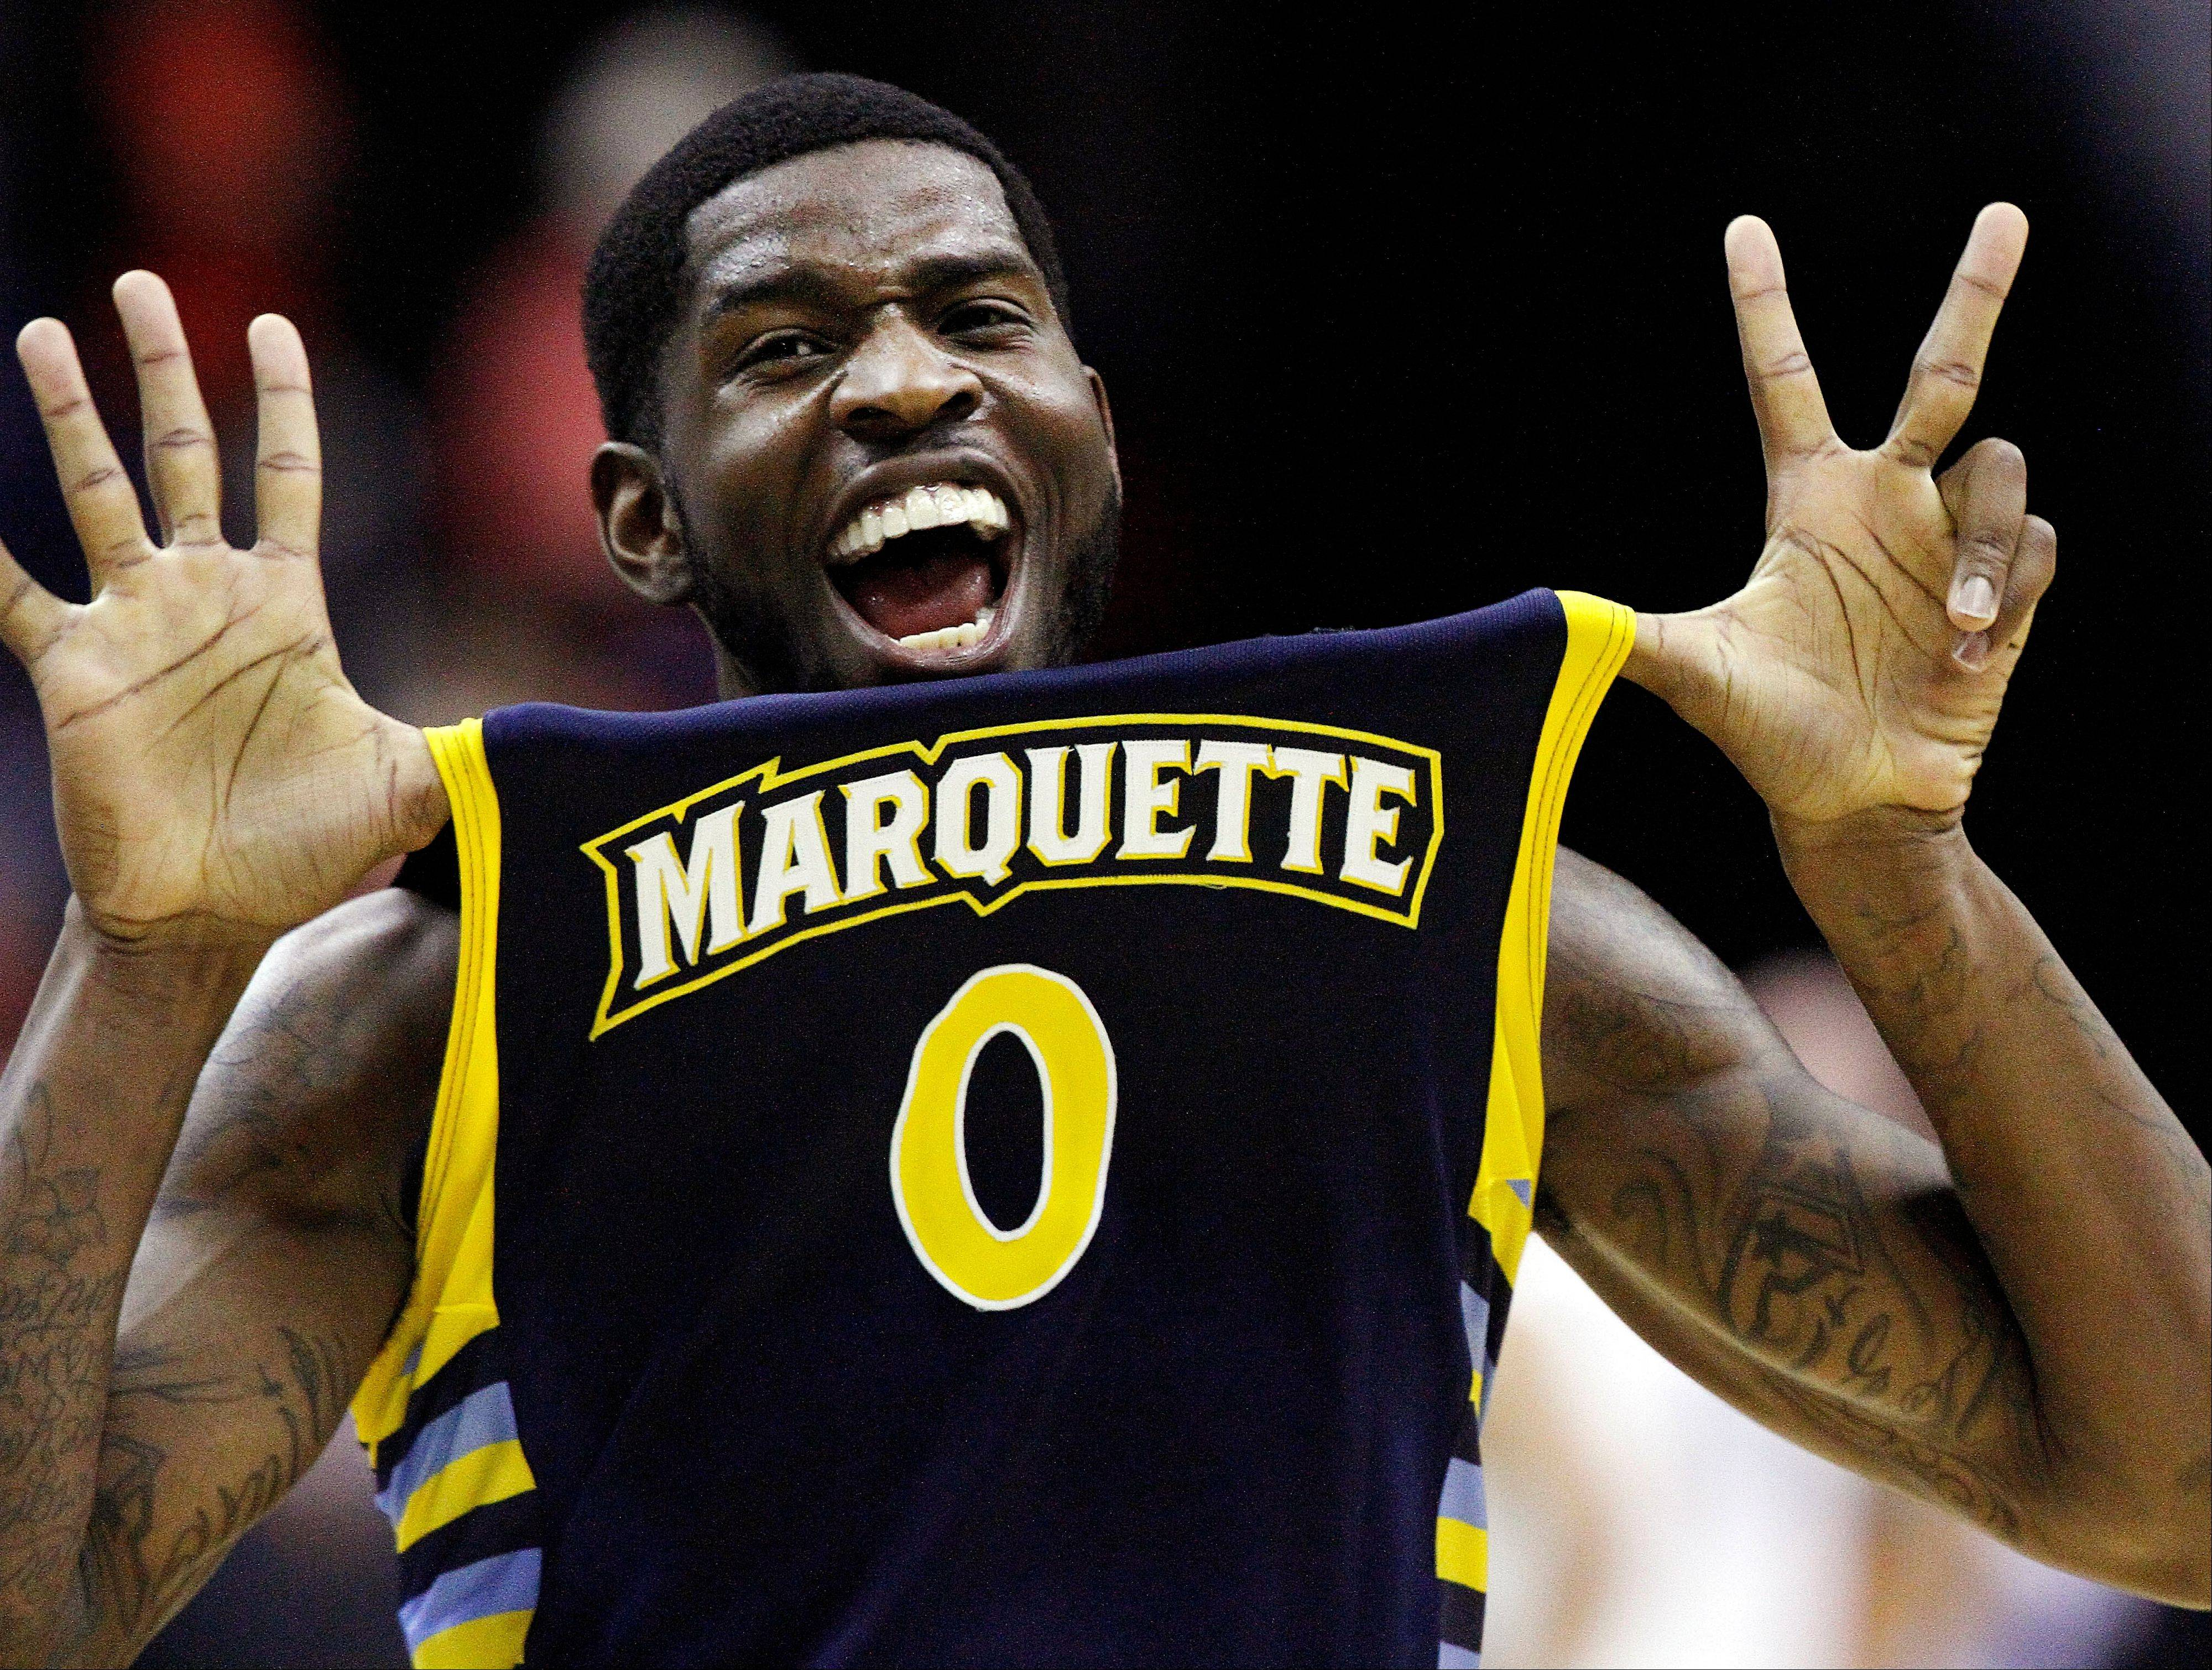 Marquette forward Jamil Wilson (0) celebrates their 71-61 win over Miami in an East Regional semifinal in the NCAA college basketball tournament, Thursday, March 28, 2013, in Washington. Wilson scored 16 points in the victory.